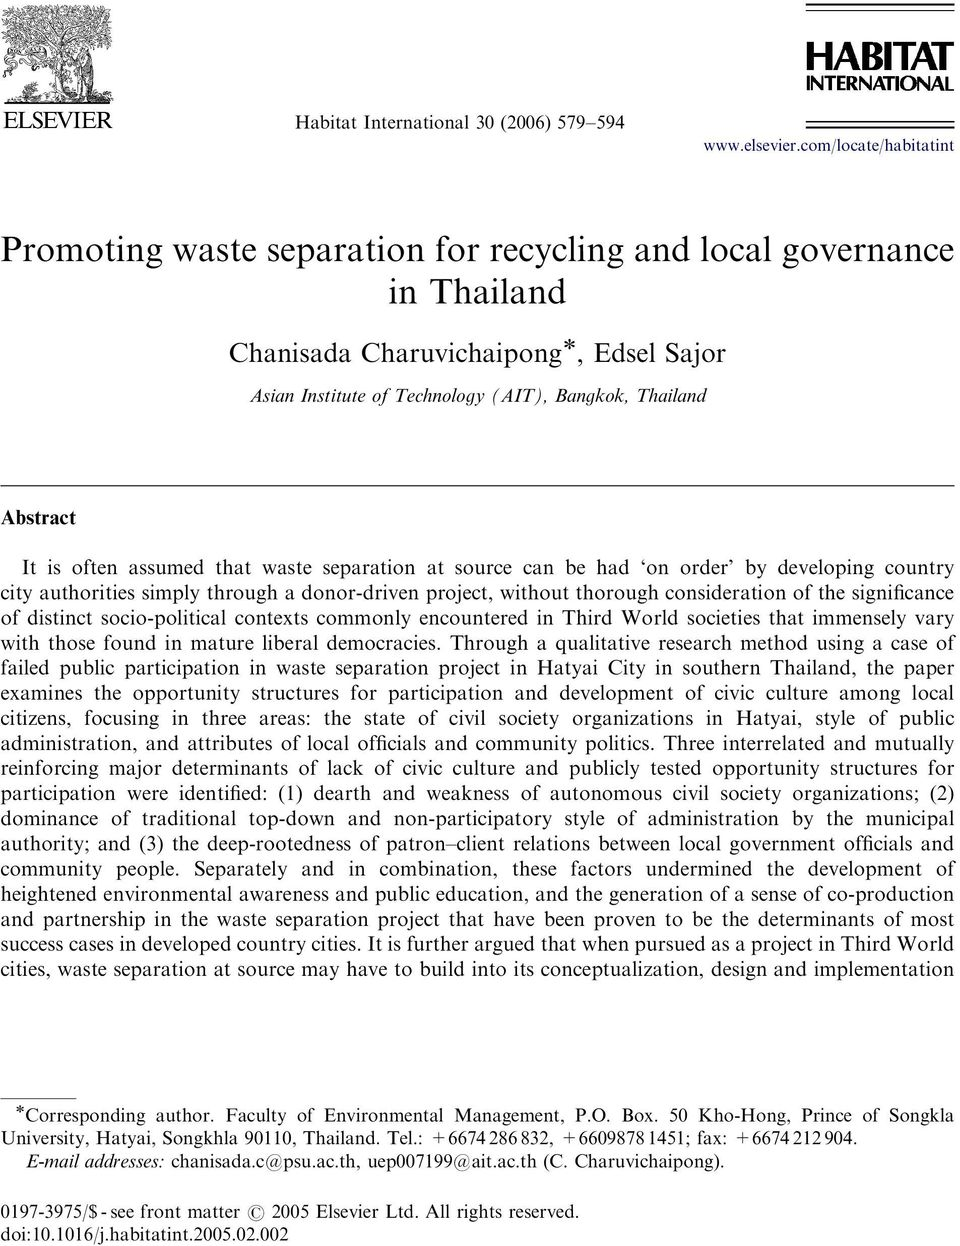 It is often assumed that waste separation at source can be had on order by developing country city authorities simply through a donor-driven project, without thorough consideration of the